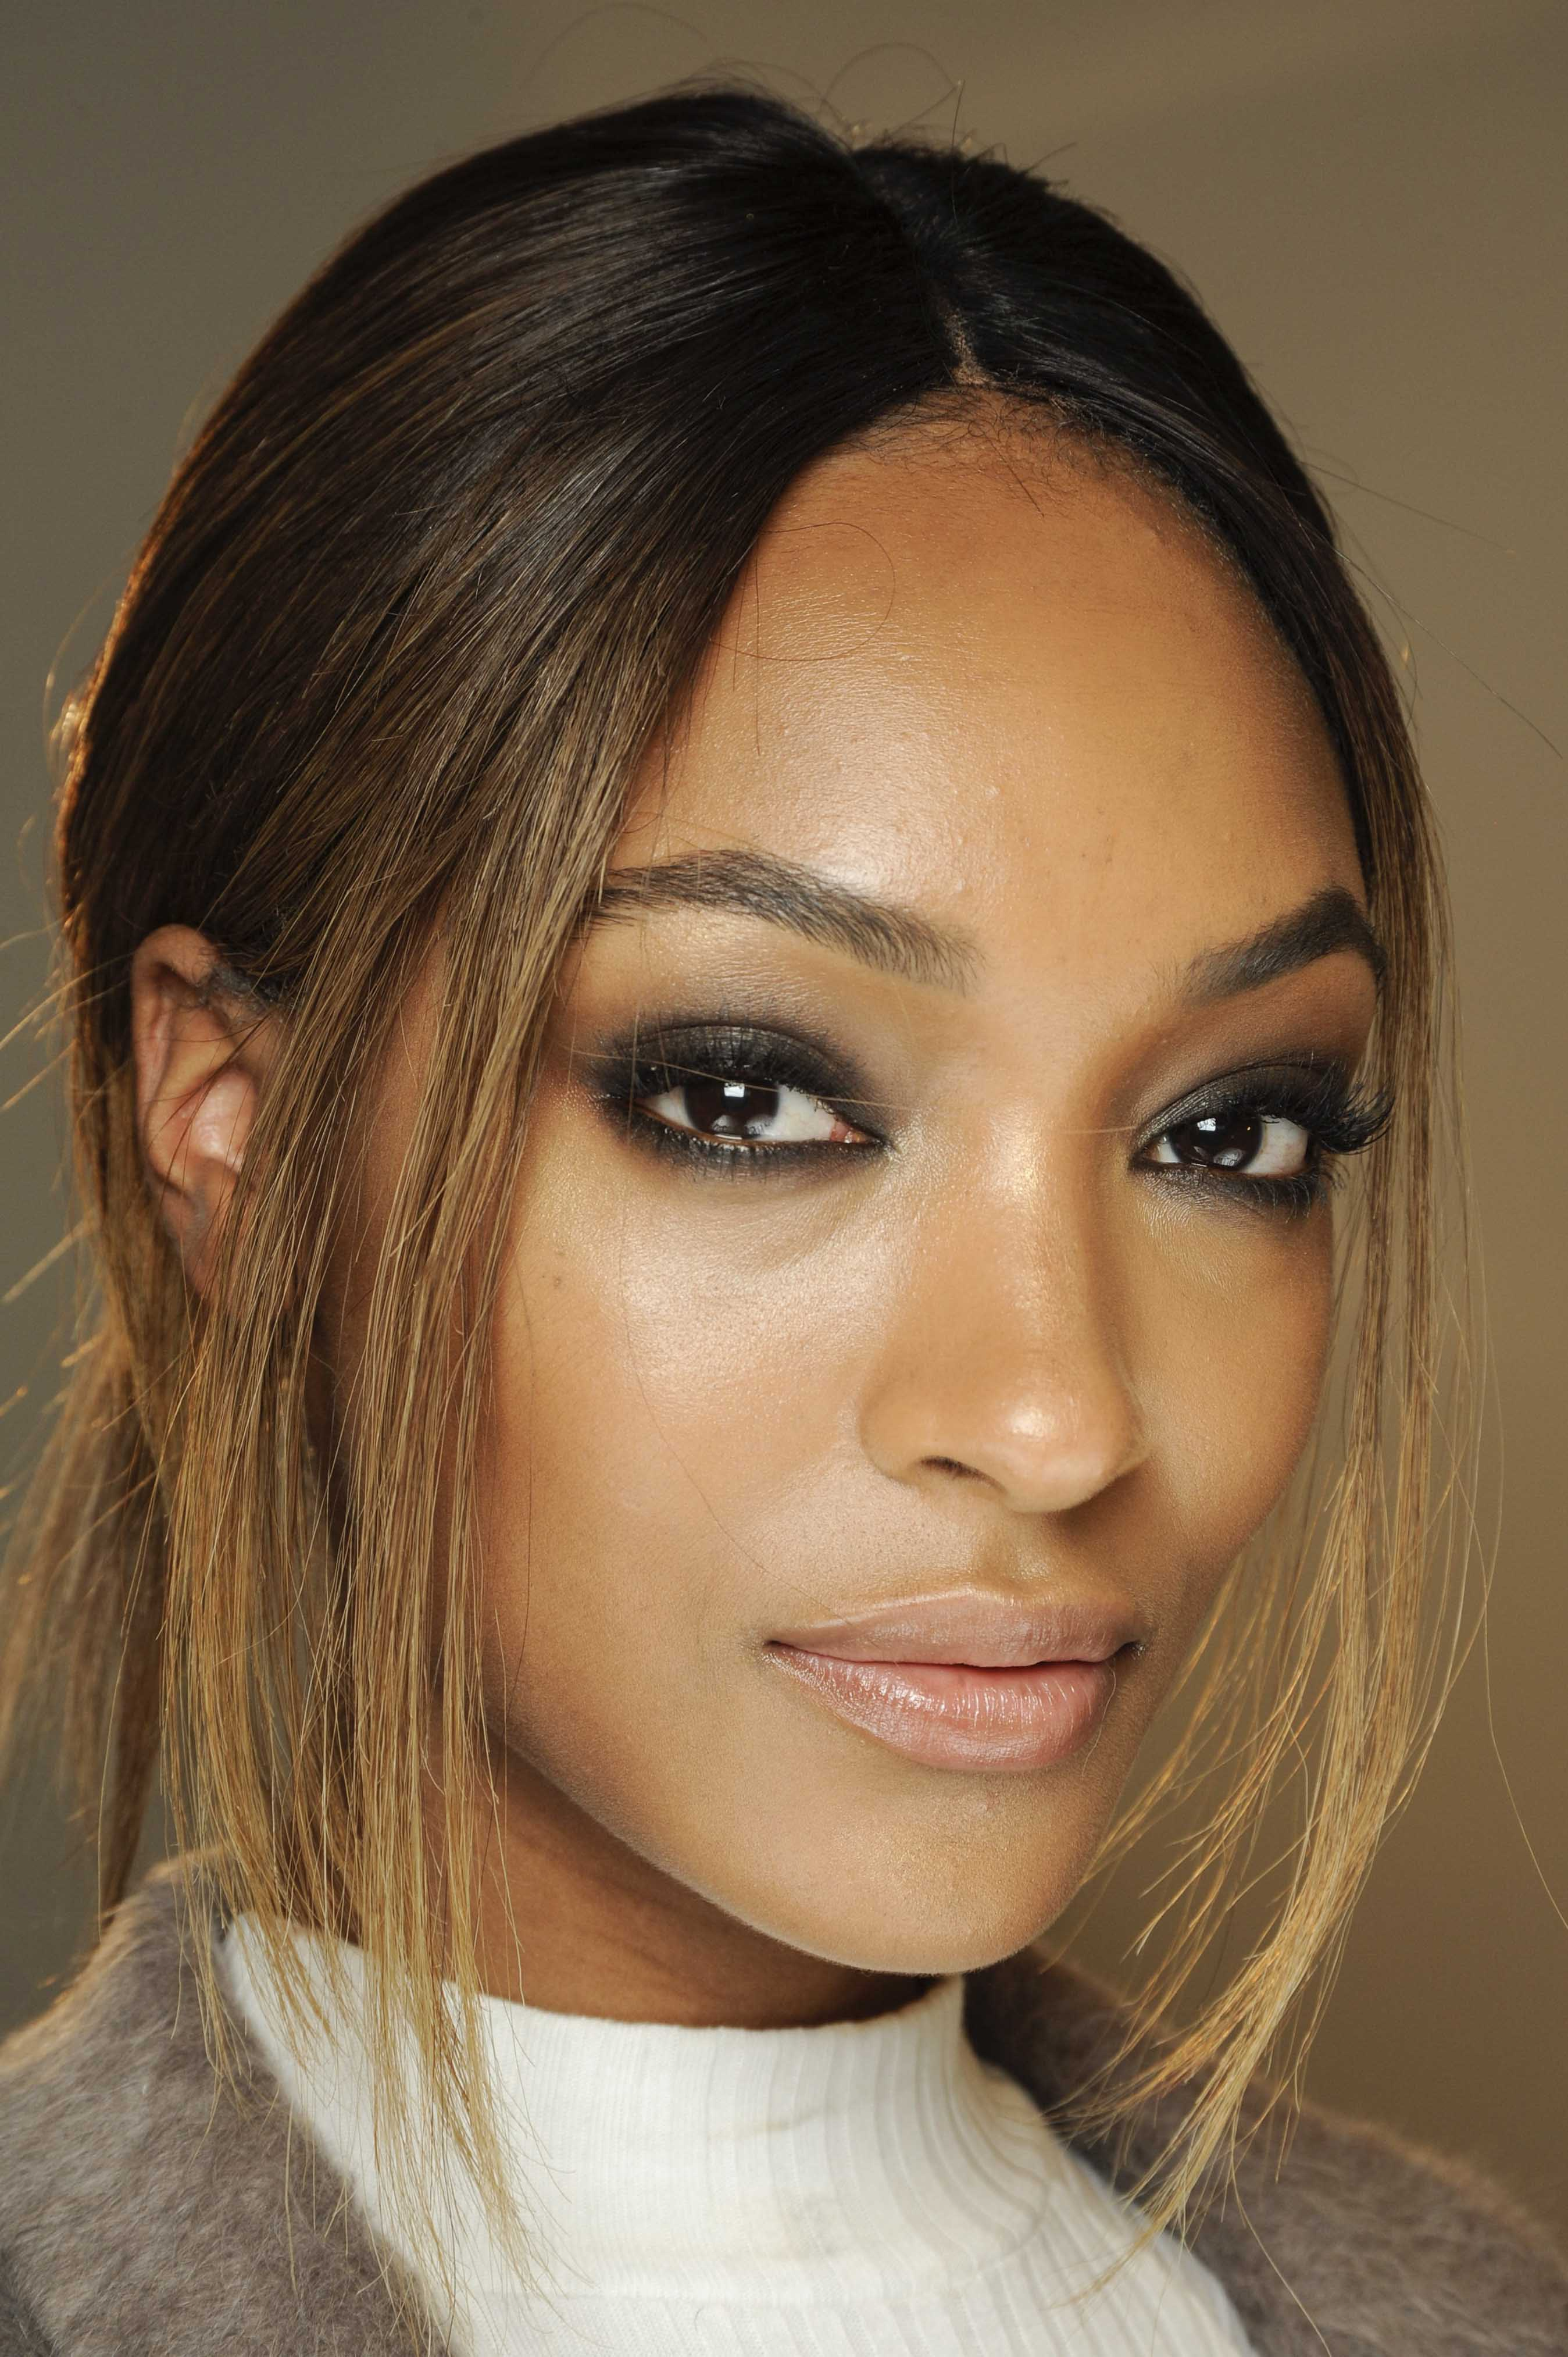 Balayage technique: Jourdan Dunn with dark golden brown balayage hair in low ponytail with dark eye make-up, and high neck top.